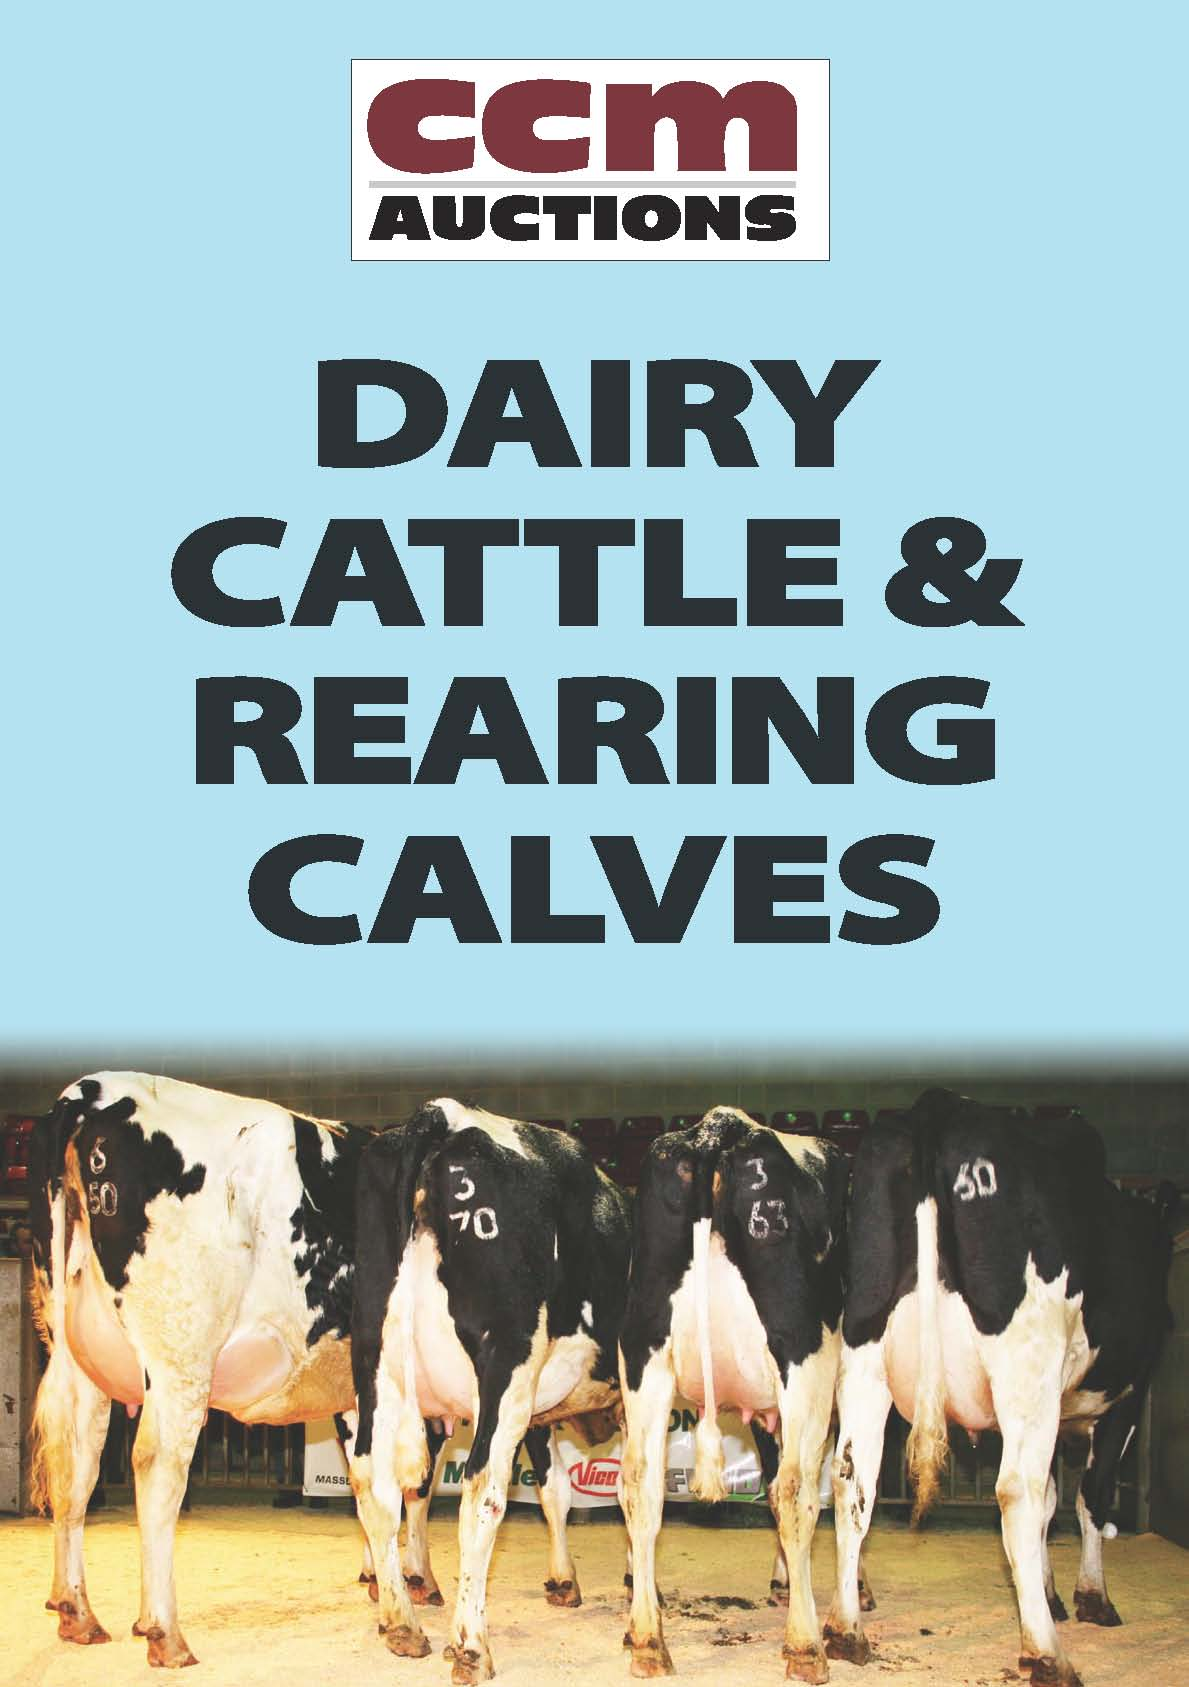 DAIRY & CALVES - MONDAY 29TH AUGUST 2016